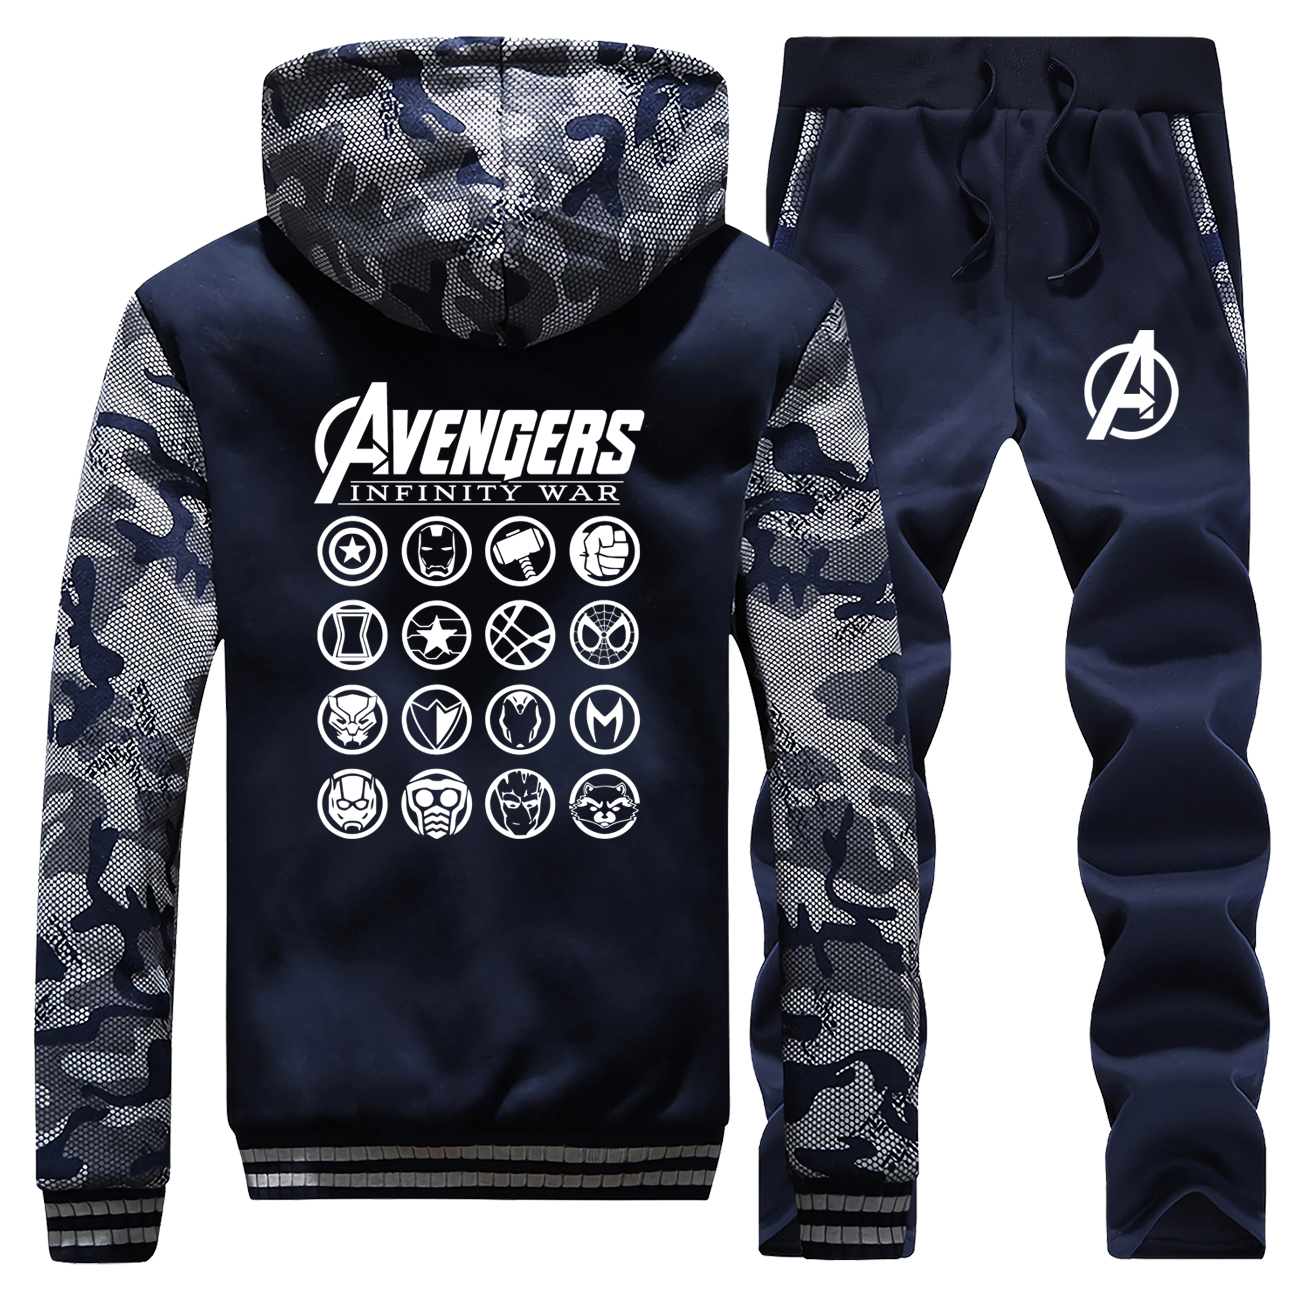 The Avengers Latest Endgame Hoodies Men's Camouflage Sweatshirt Winter Fleece Warm Coat Men Fashion Jacket+Pants 2 Piece Sets